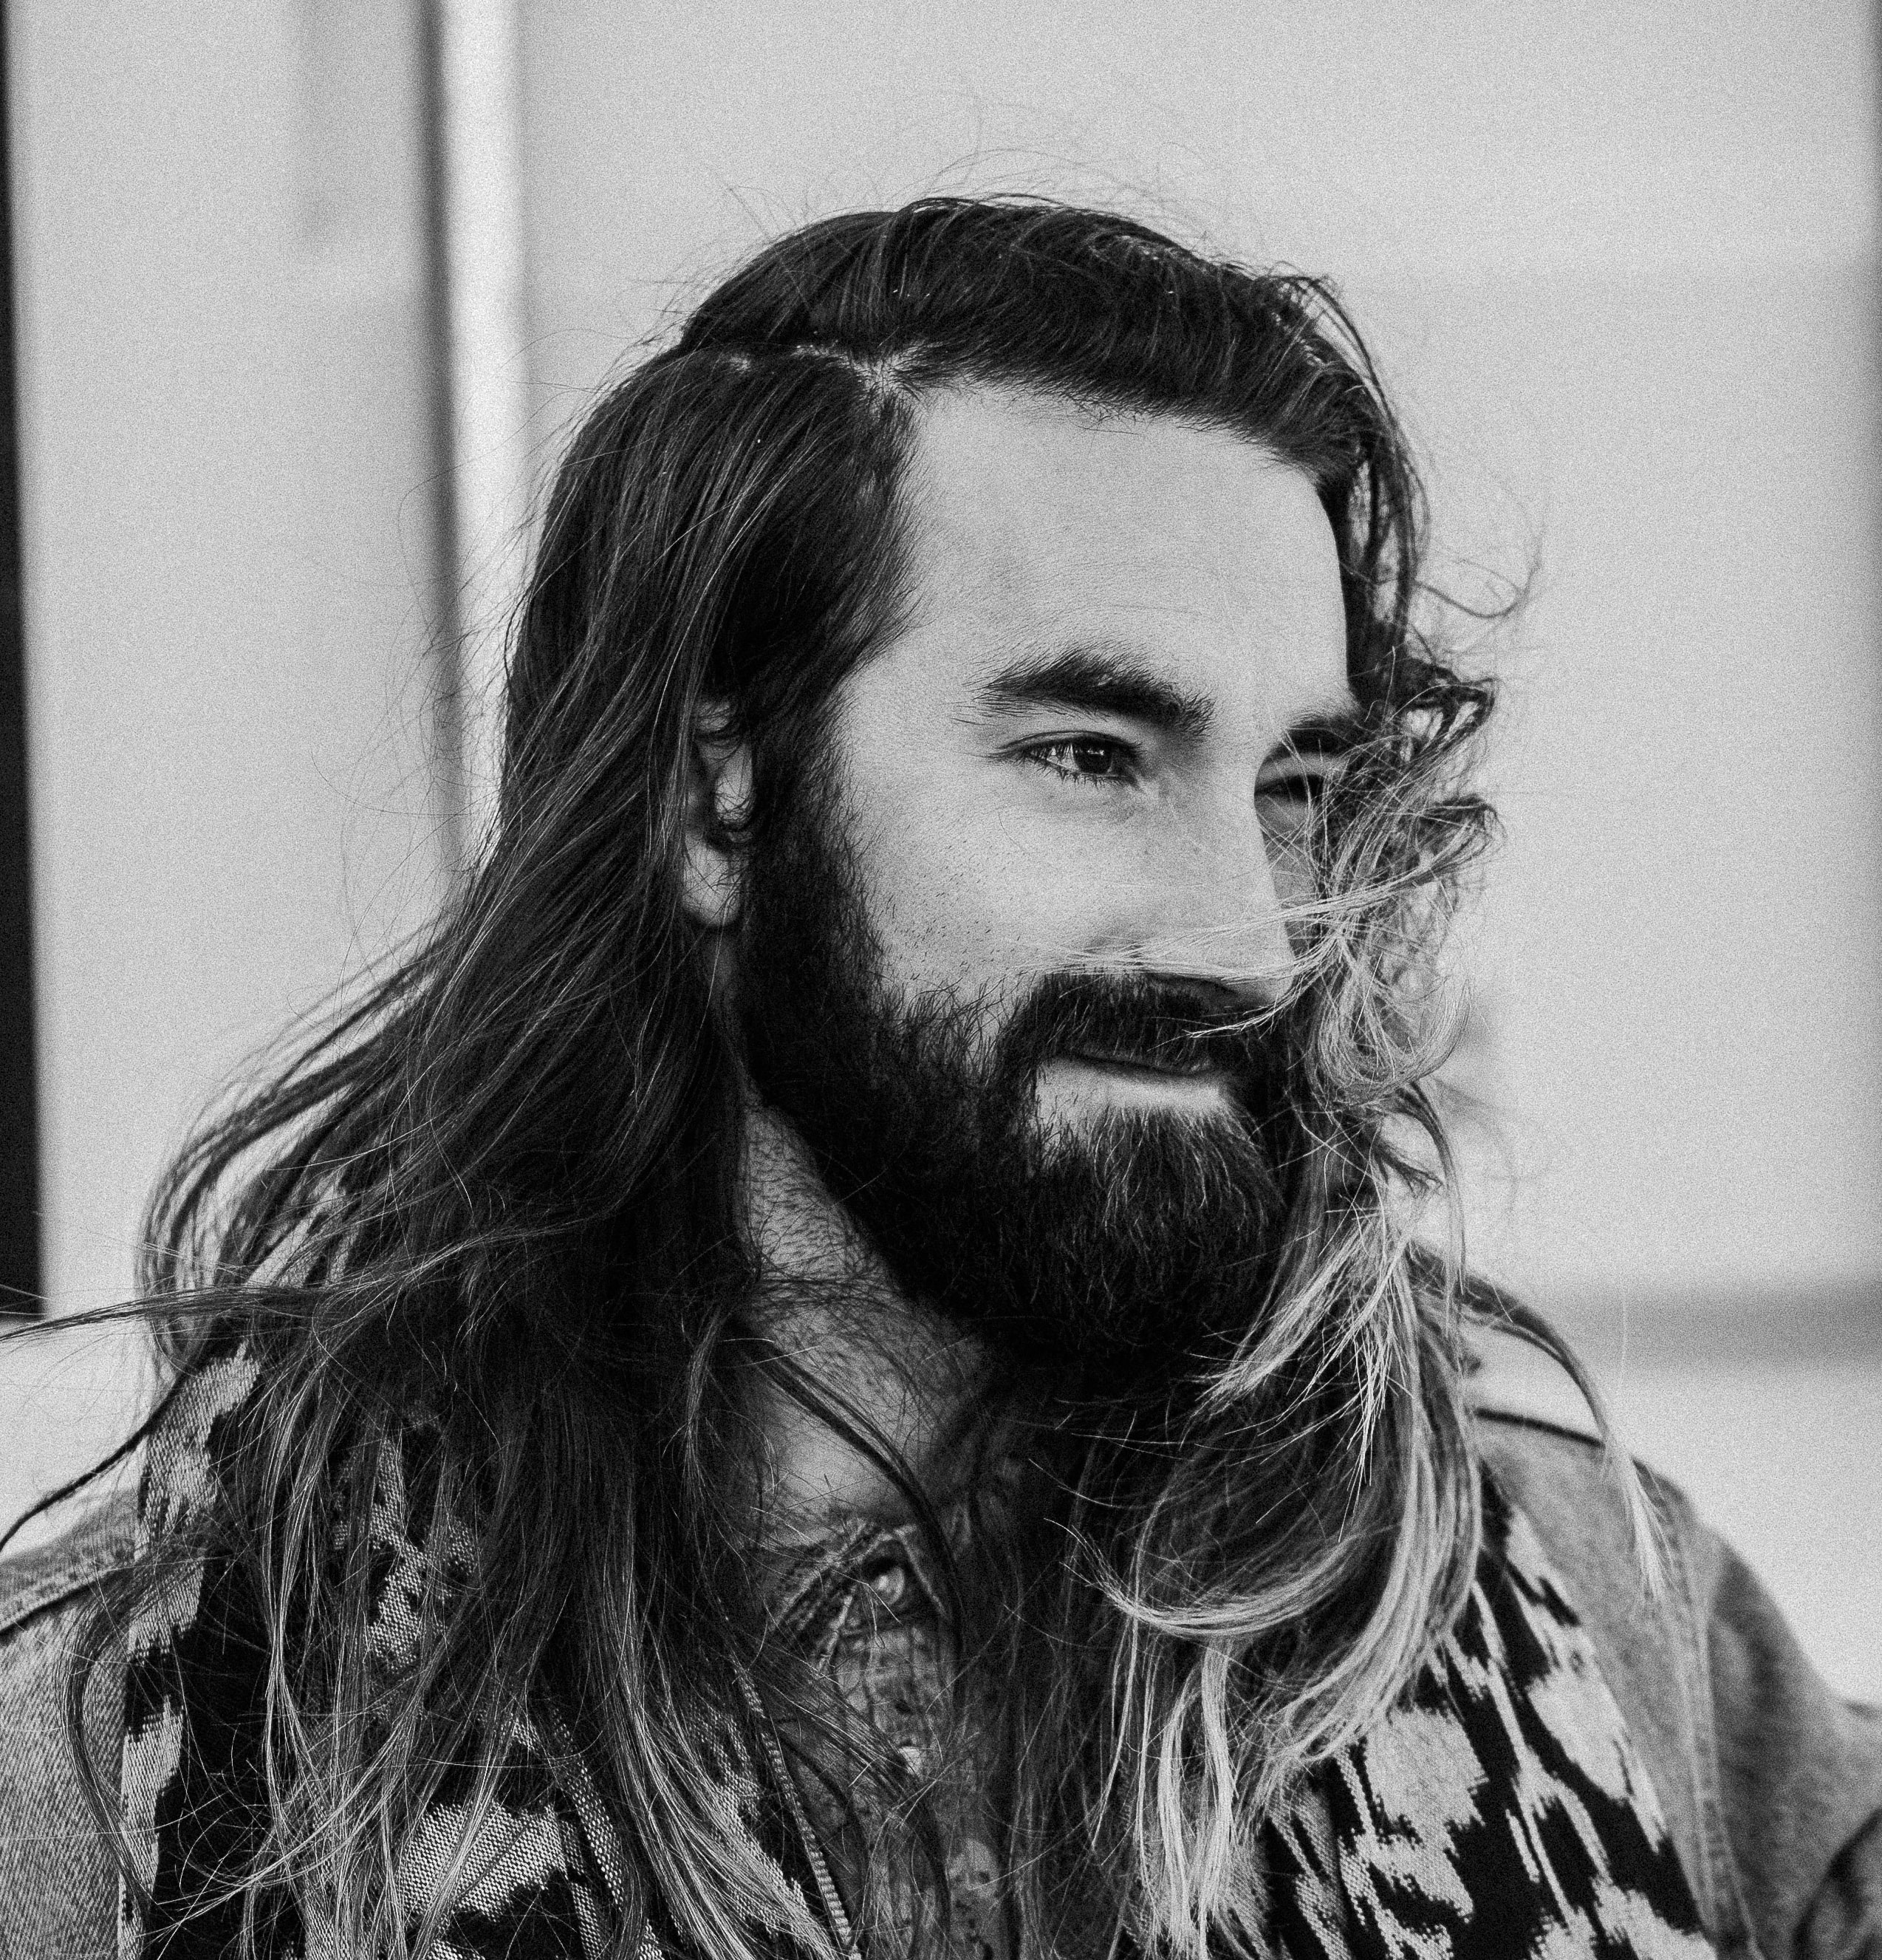 Black and white shot of man with long hair and beard